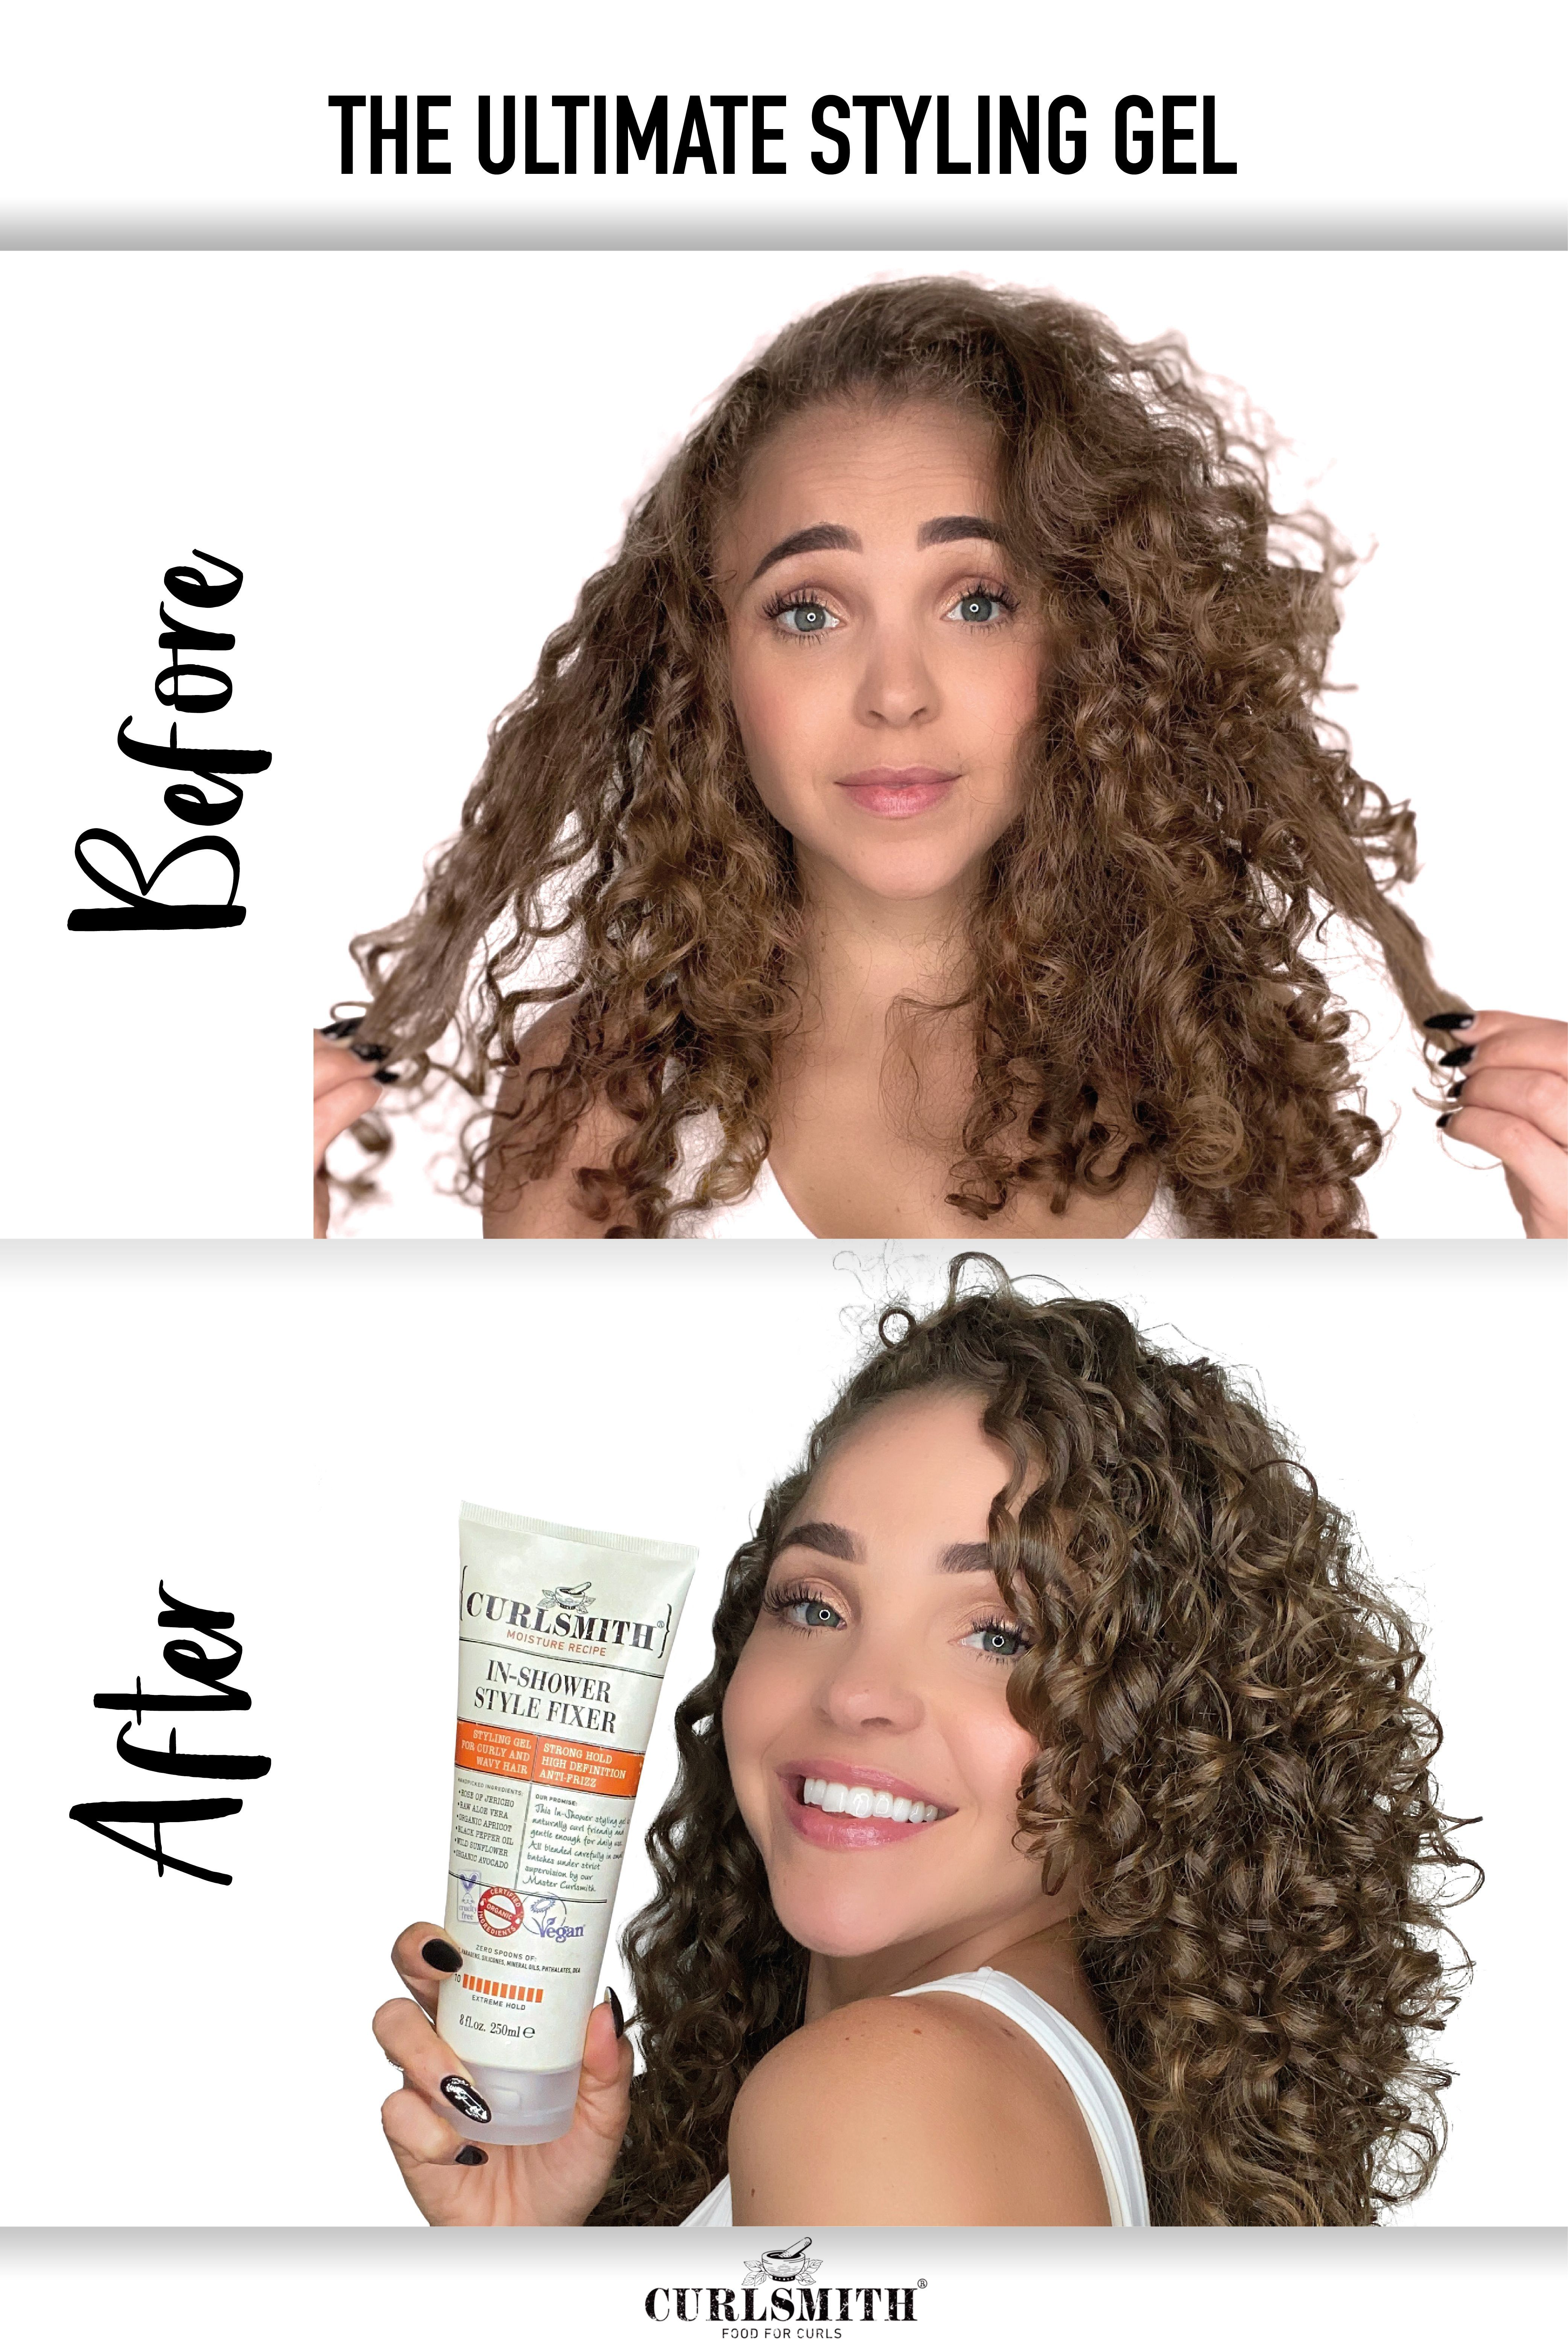 Pin By Nel On Stuff To Buy In 2020 Bouncy Curls Hair Routines Hair Styles